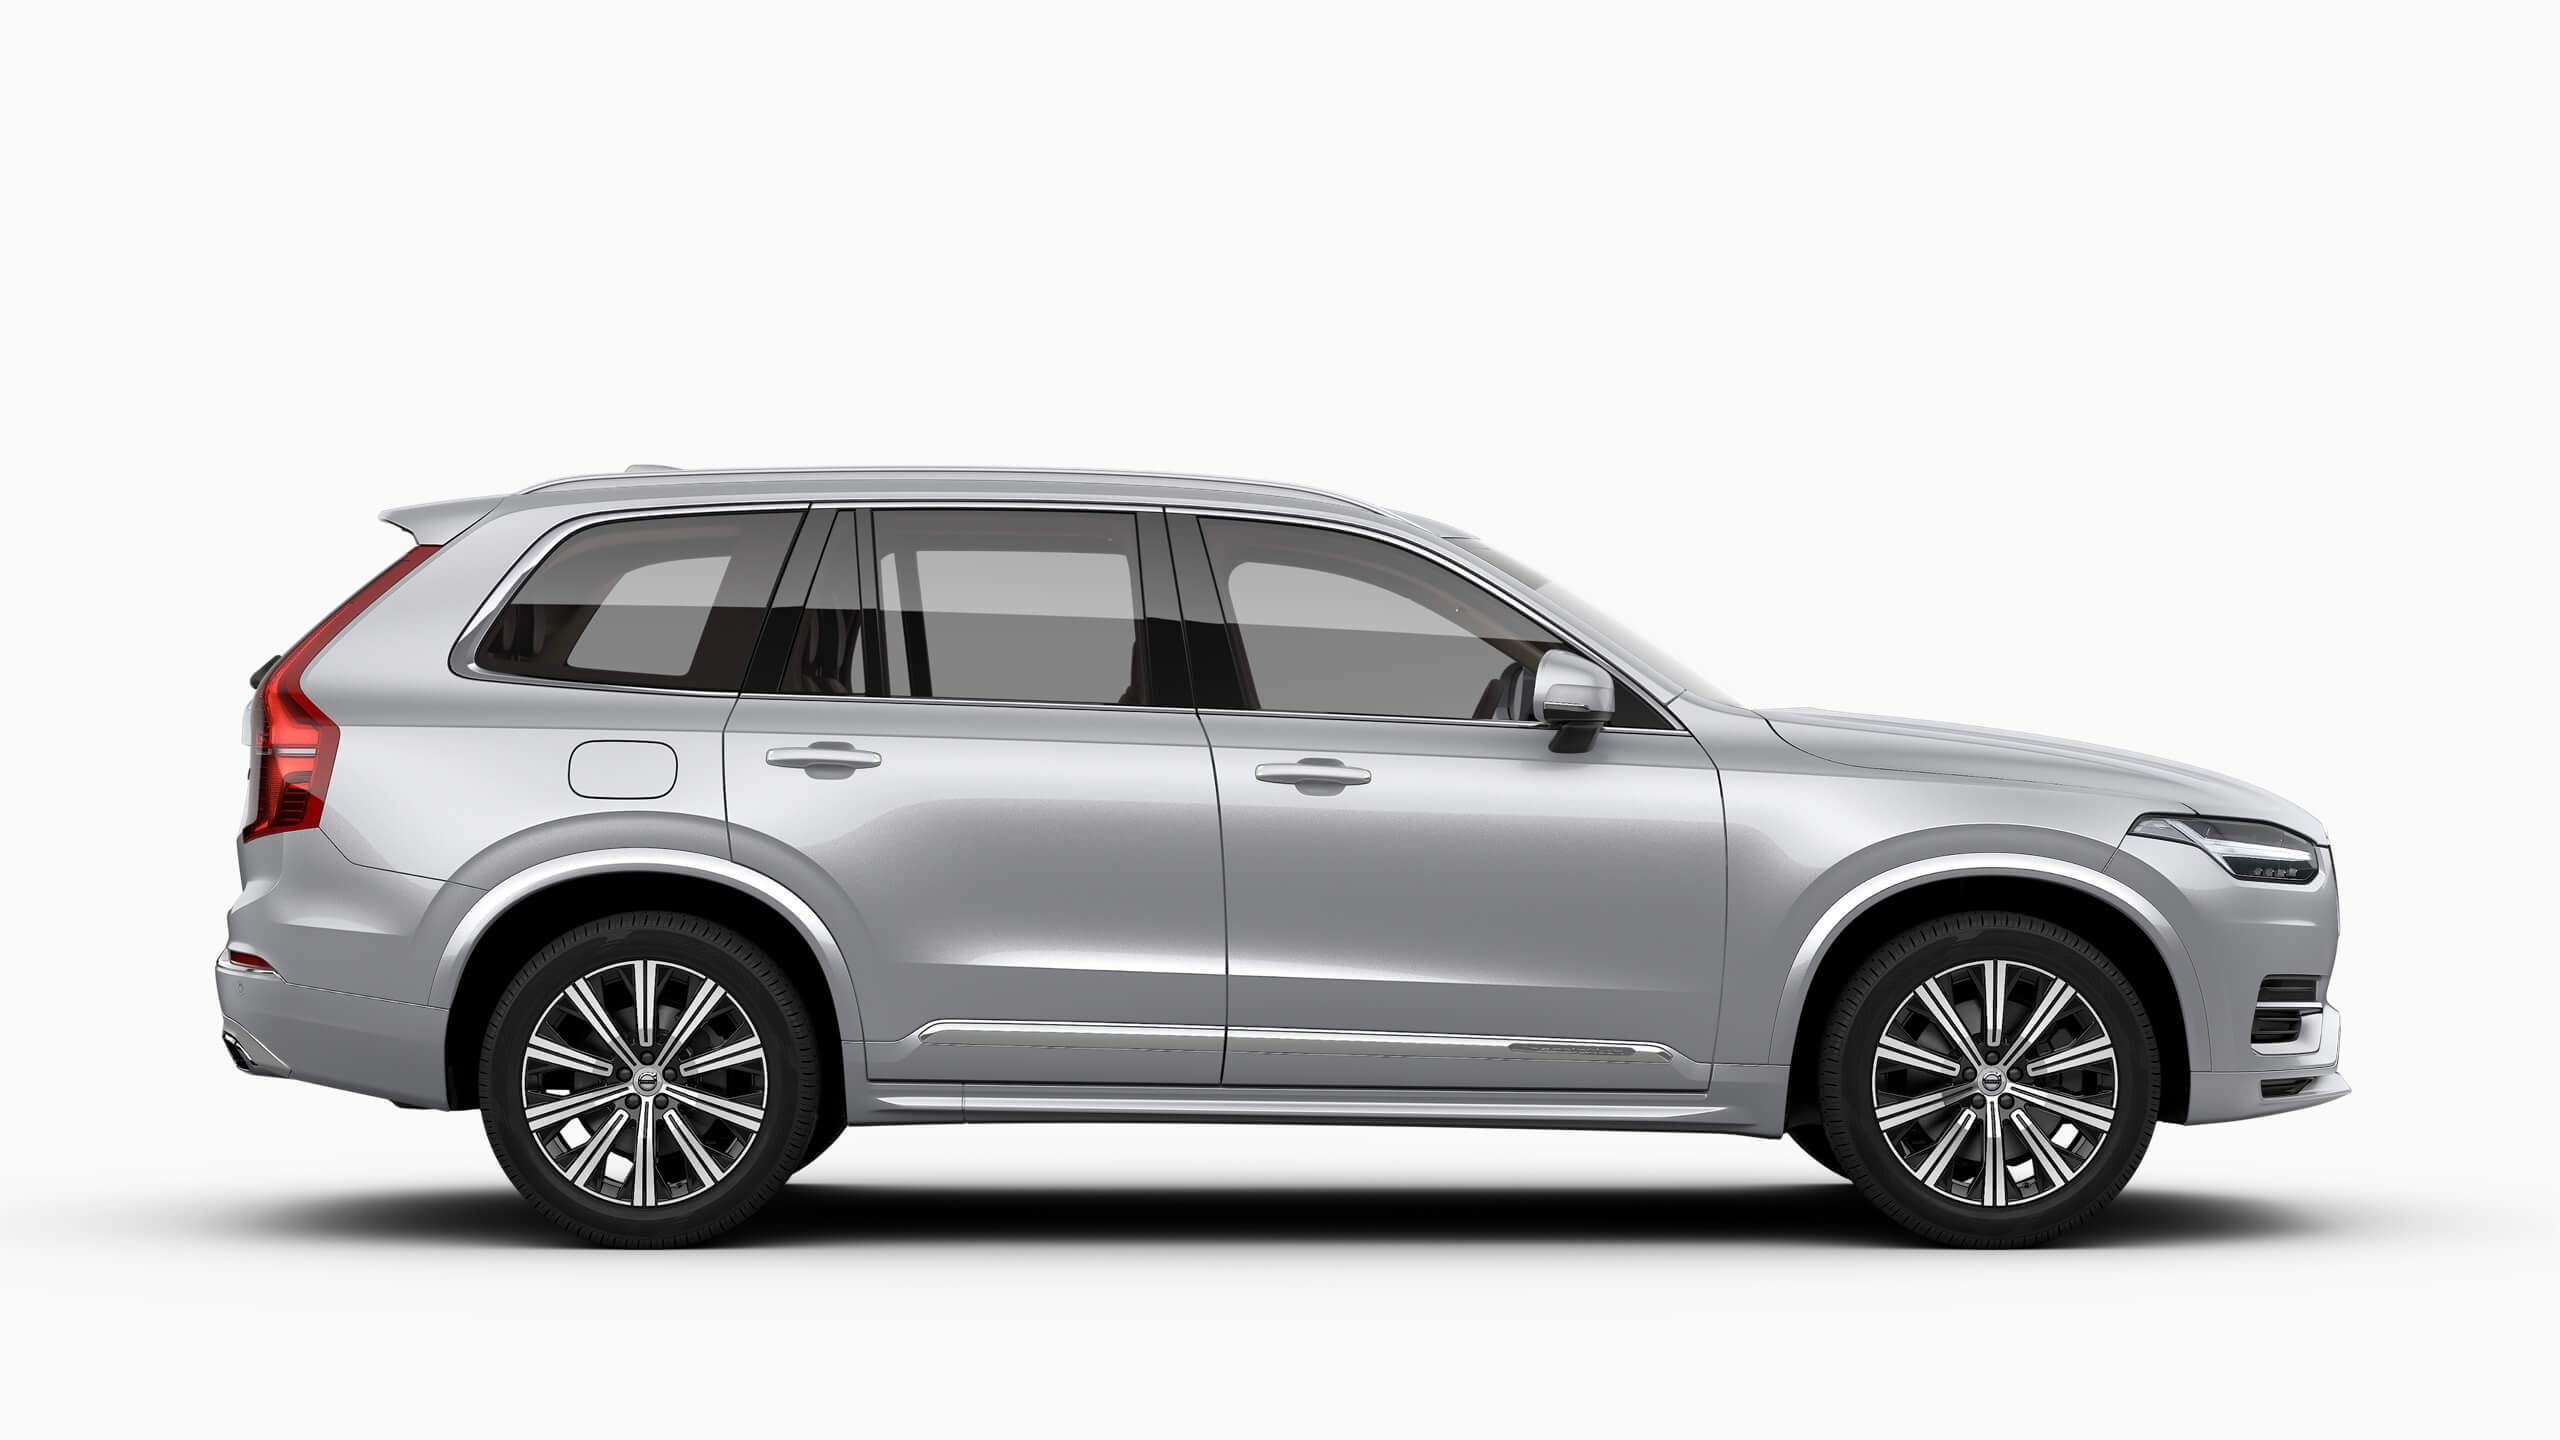 01_Bright_Silver_metallic_XC90